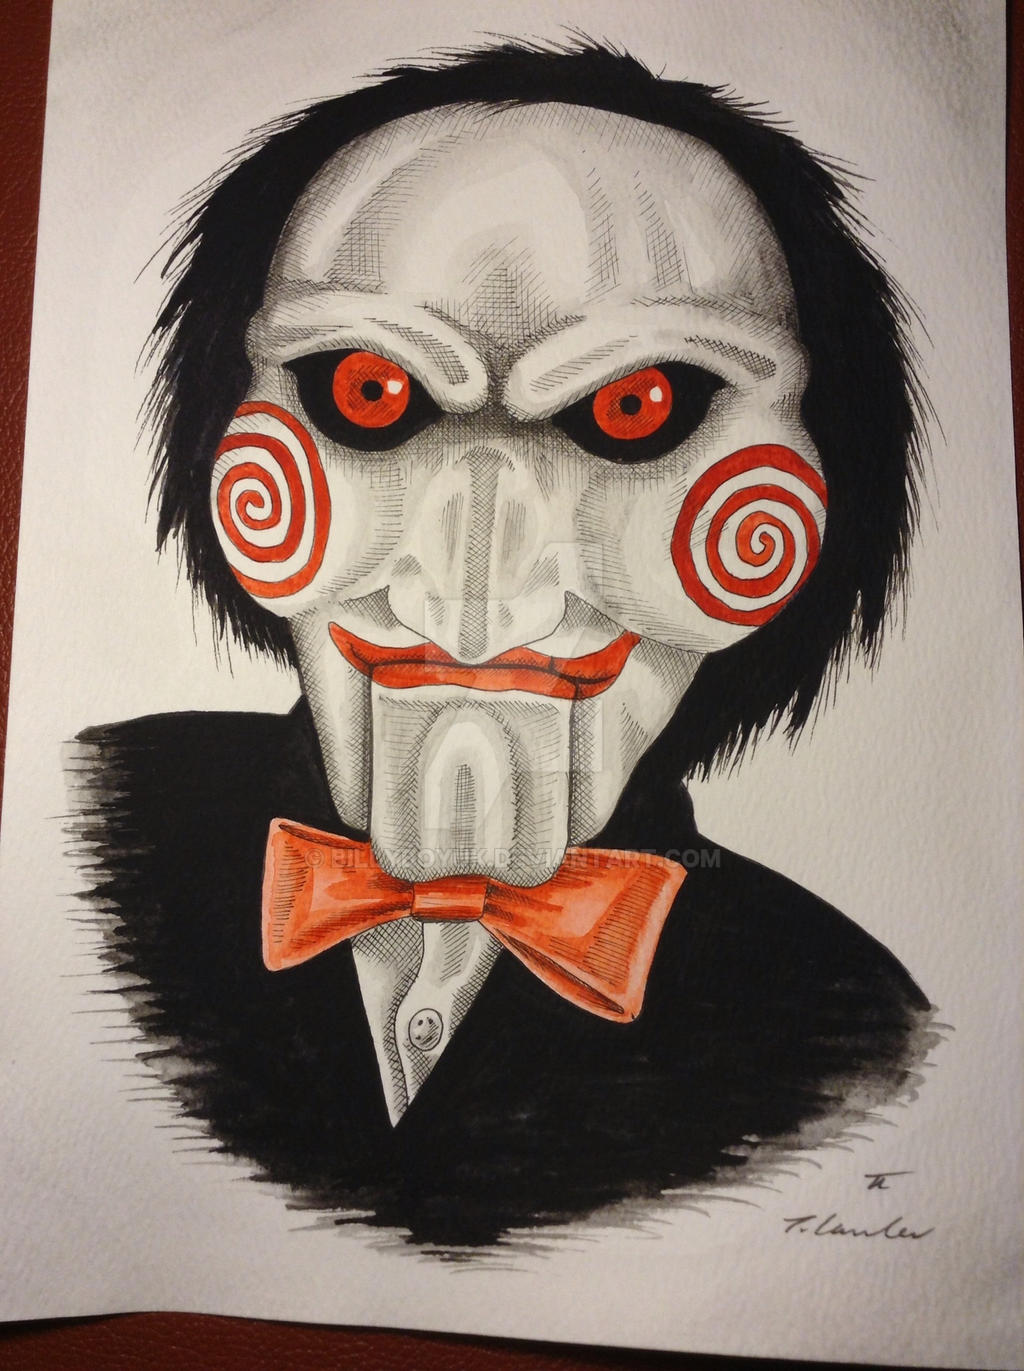 Saw Billy Puppet Drawing Painting By Billyboyuk On Deviantart